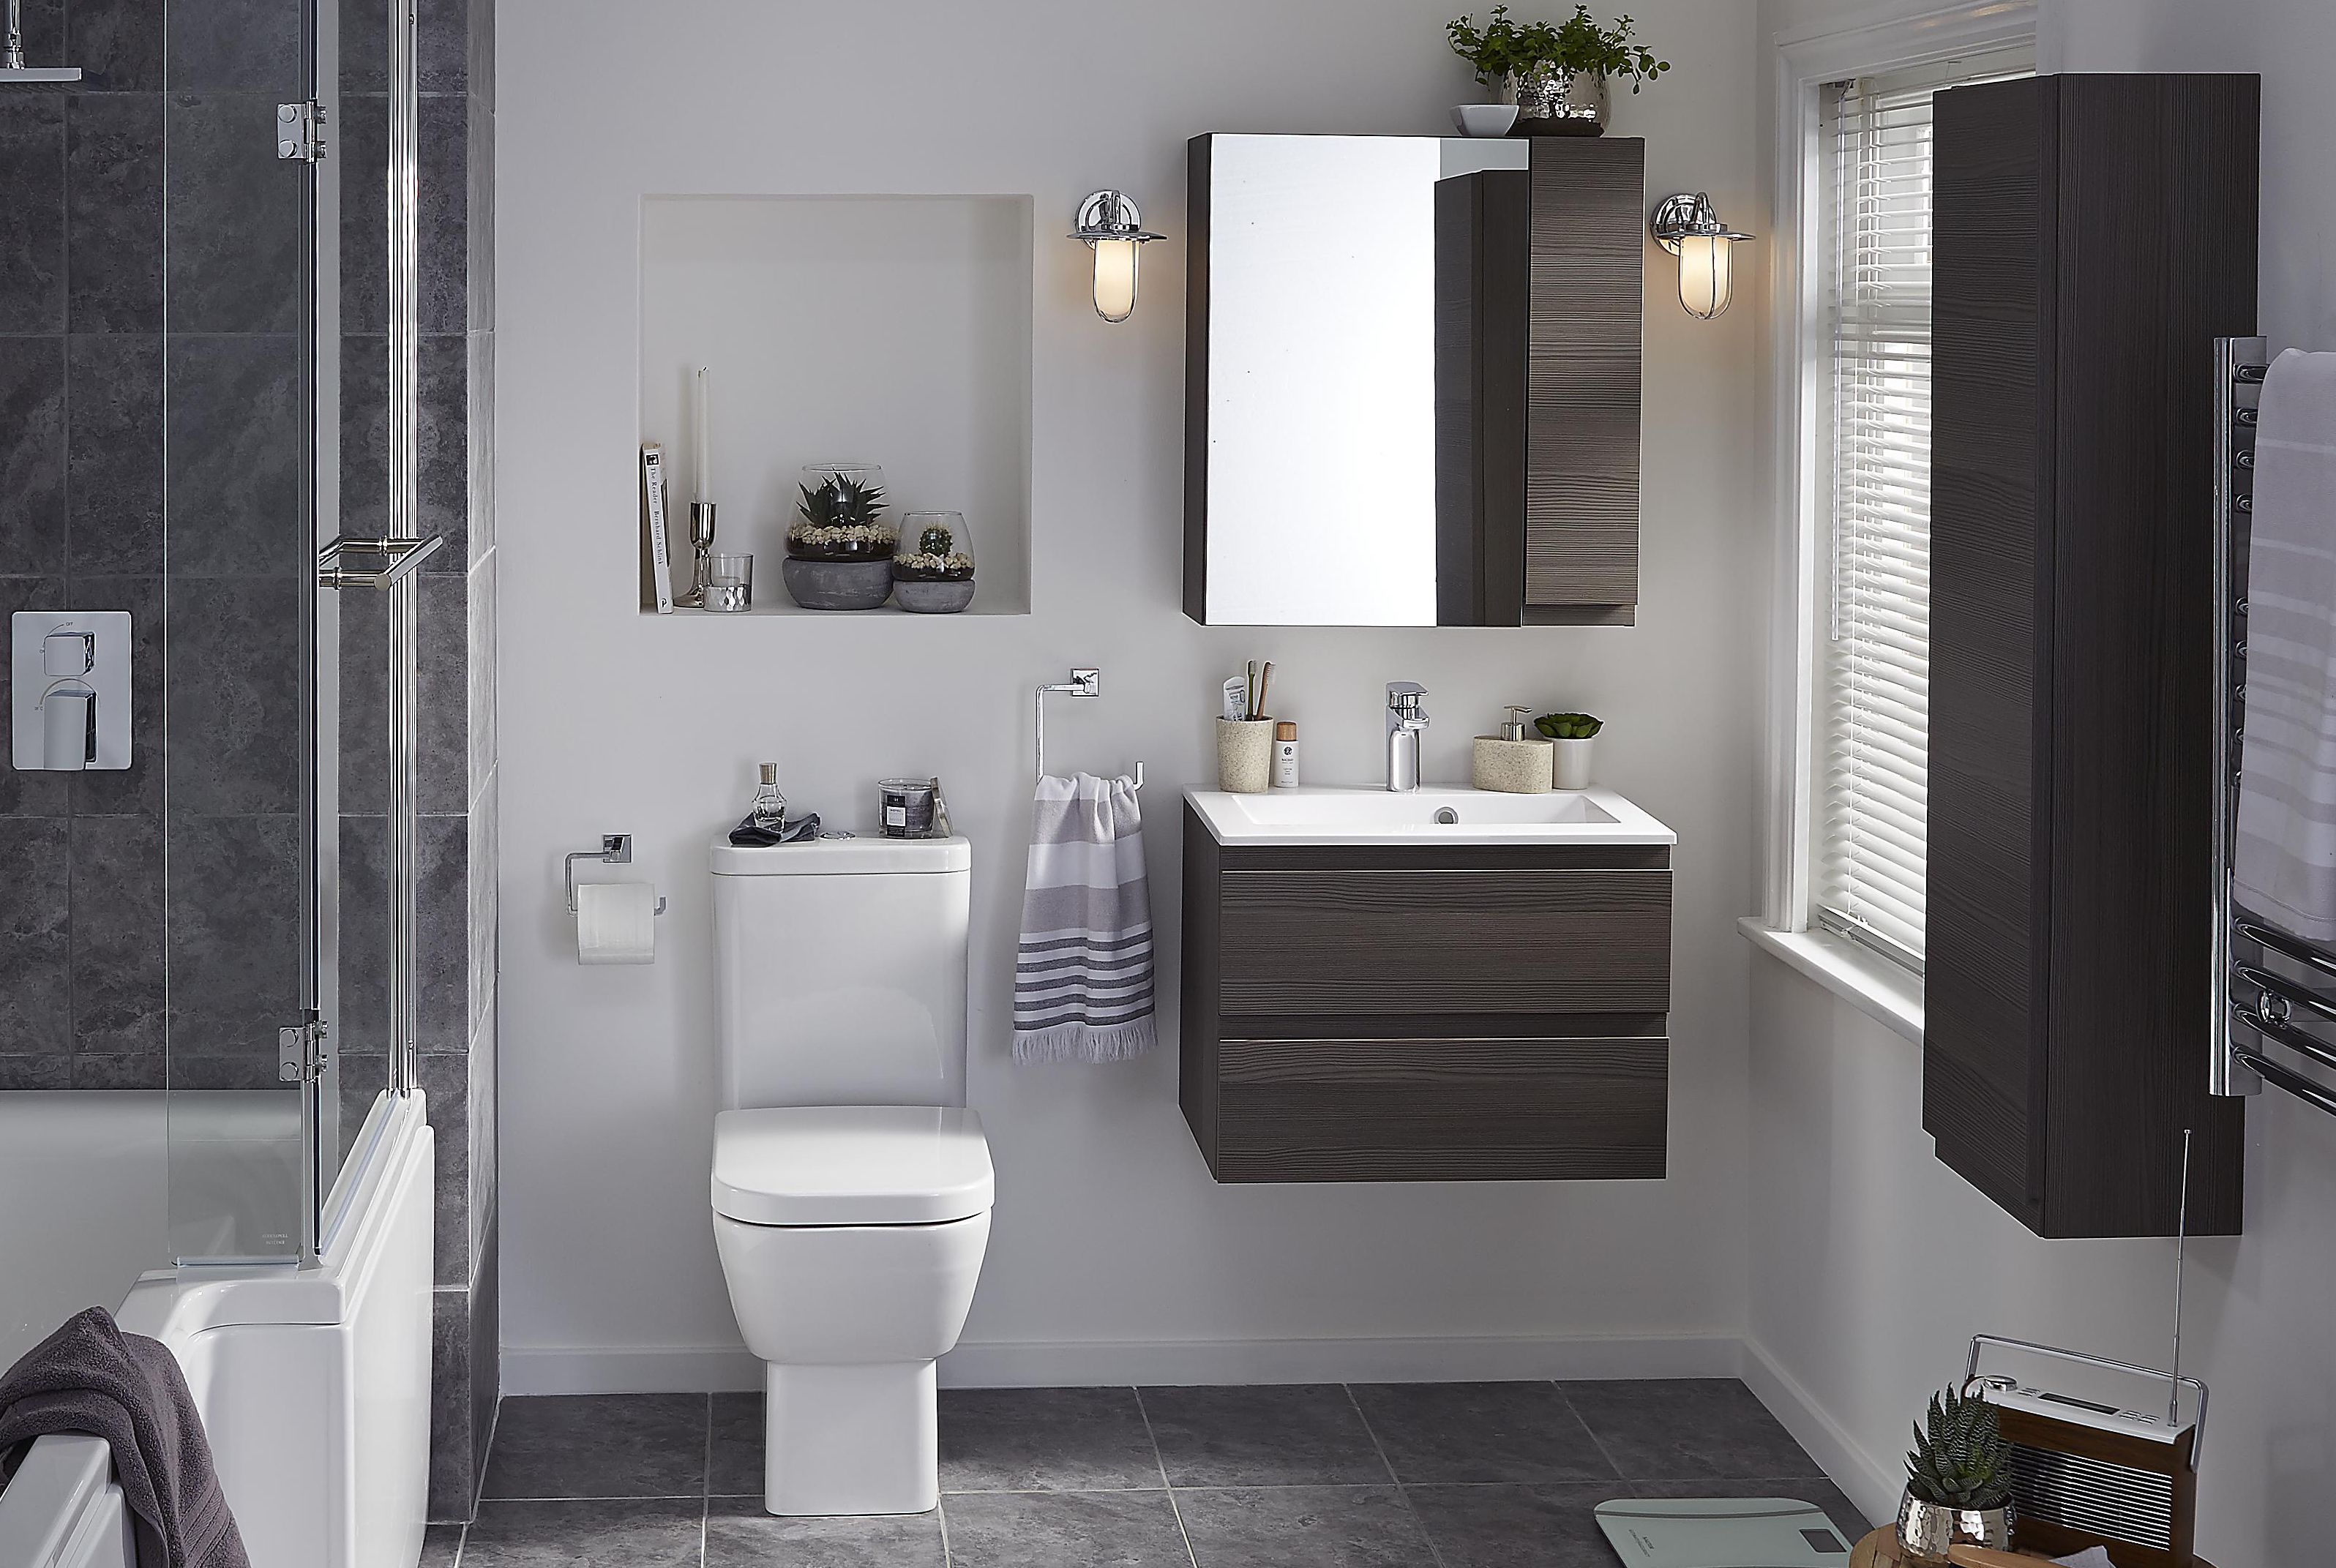 Bathroom Sinks B&Q santoro | bathroom suites | bathroom | departments | diy at b&q